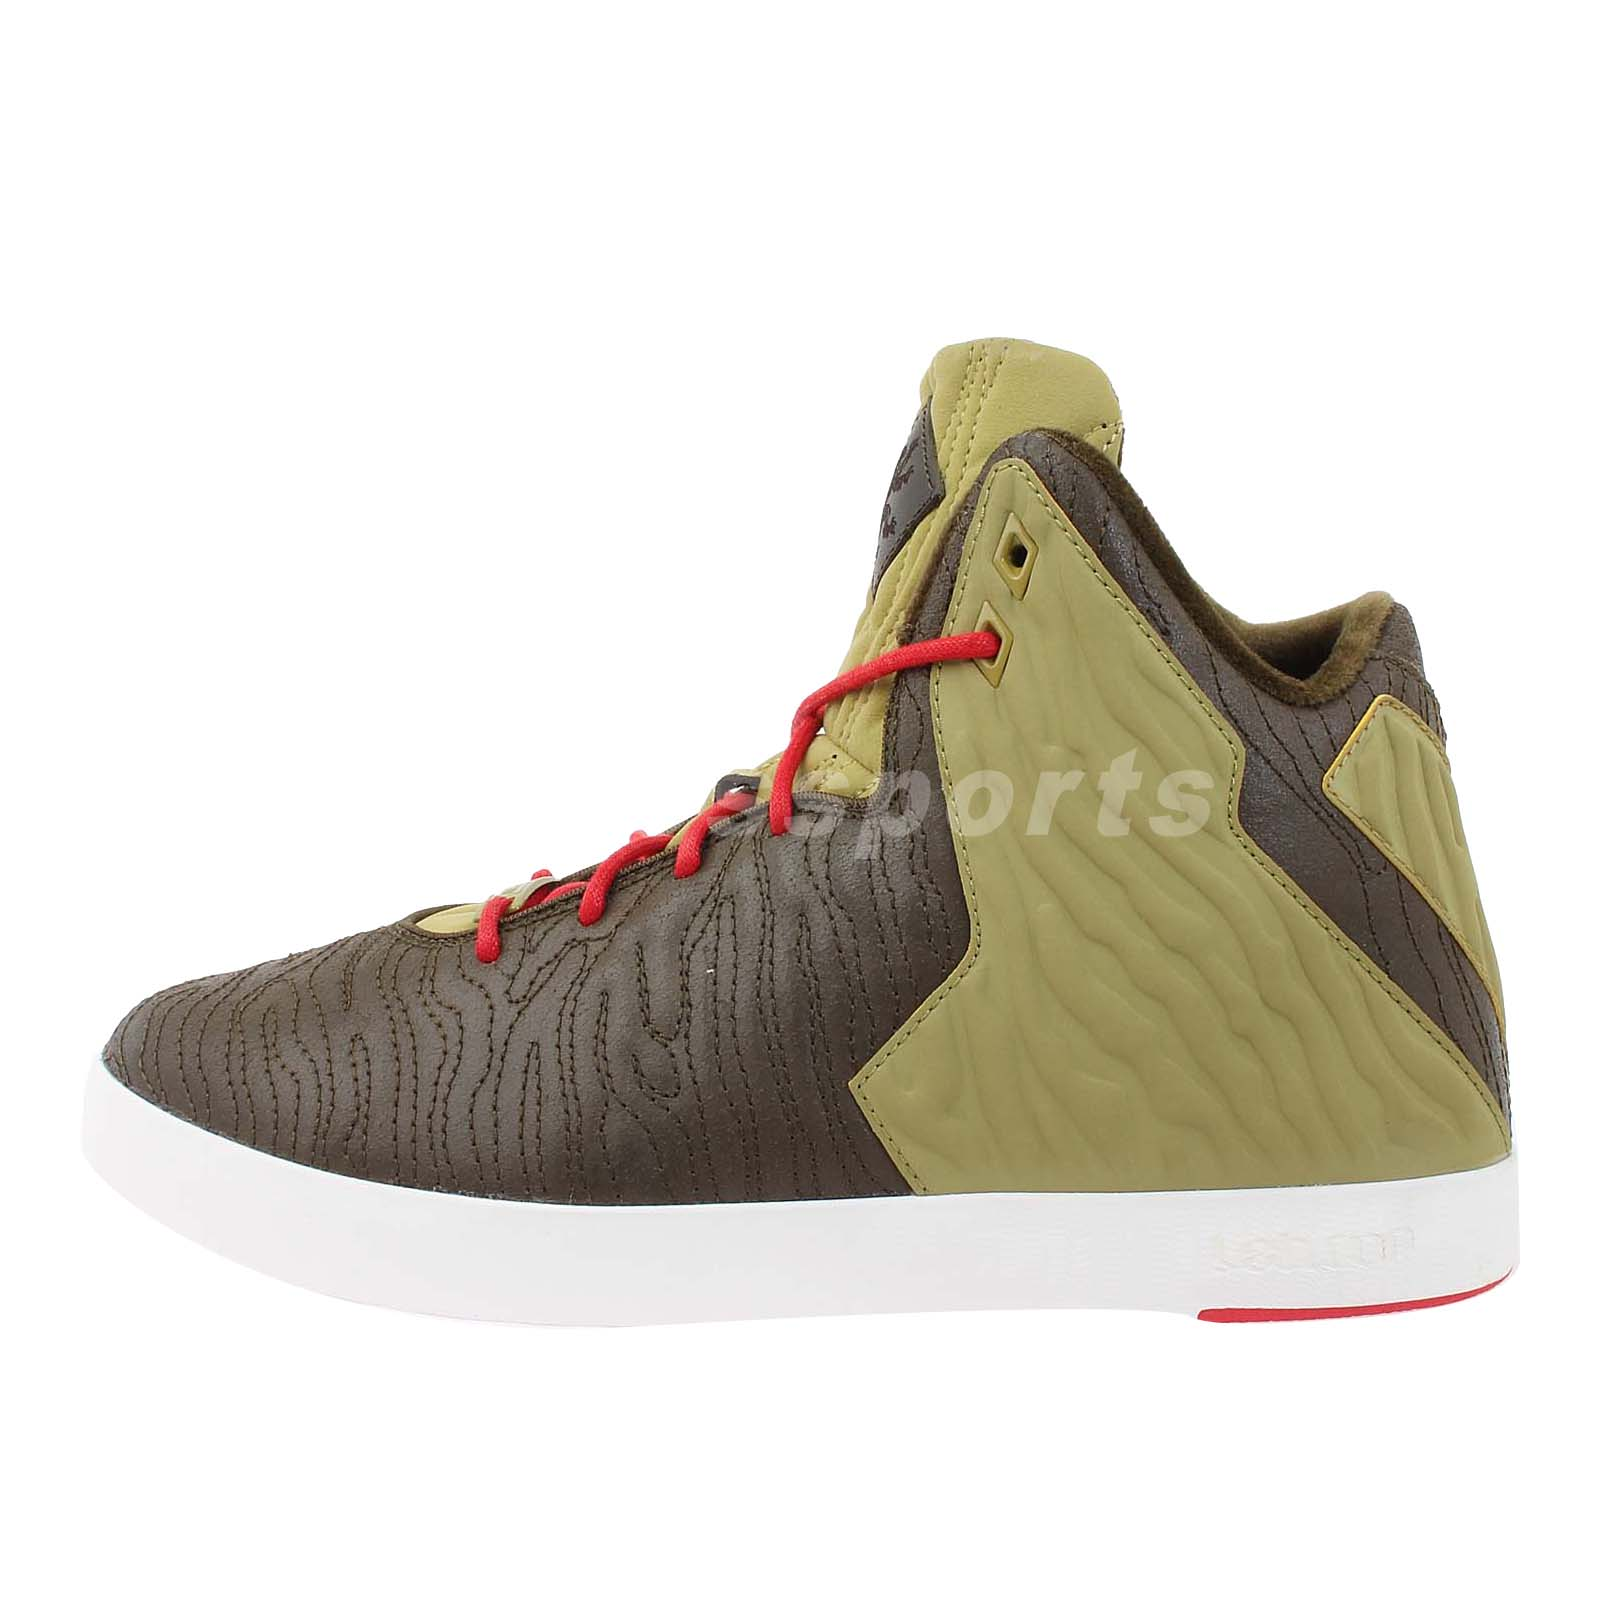 nike lebron xi nsw lifestyle 11 brown green 2013 new